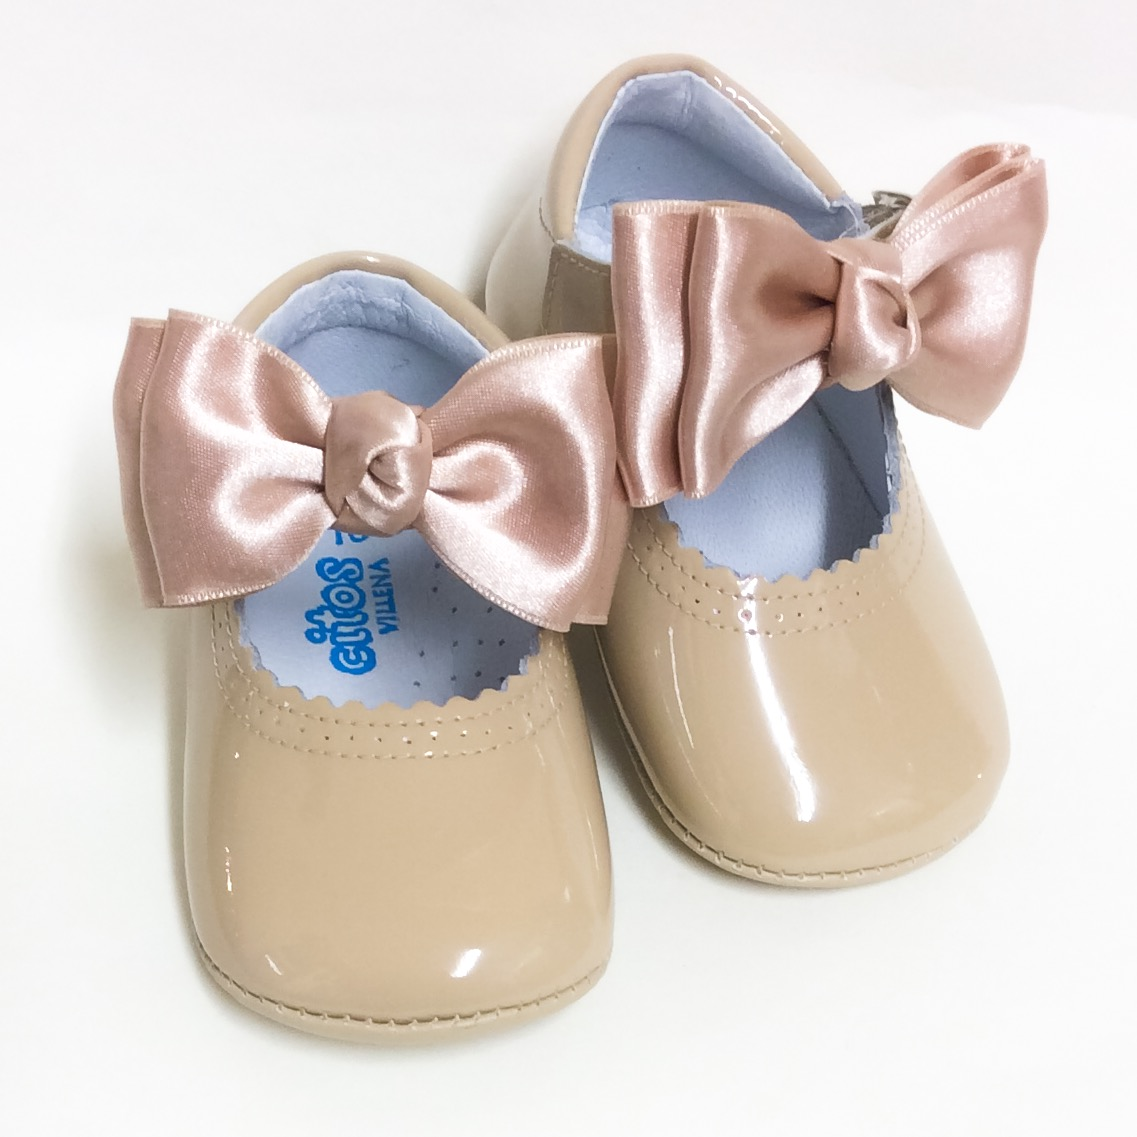 Chantelle Satin Bow Pram Shoes, Camel